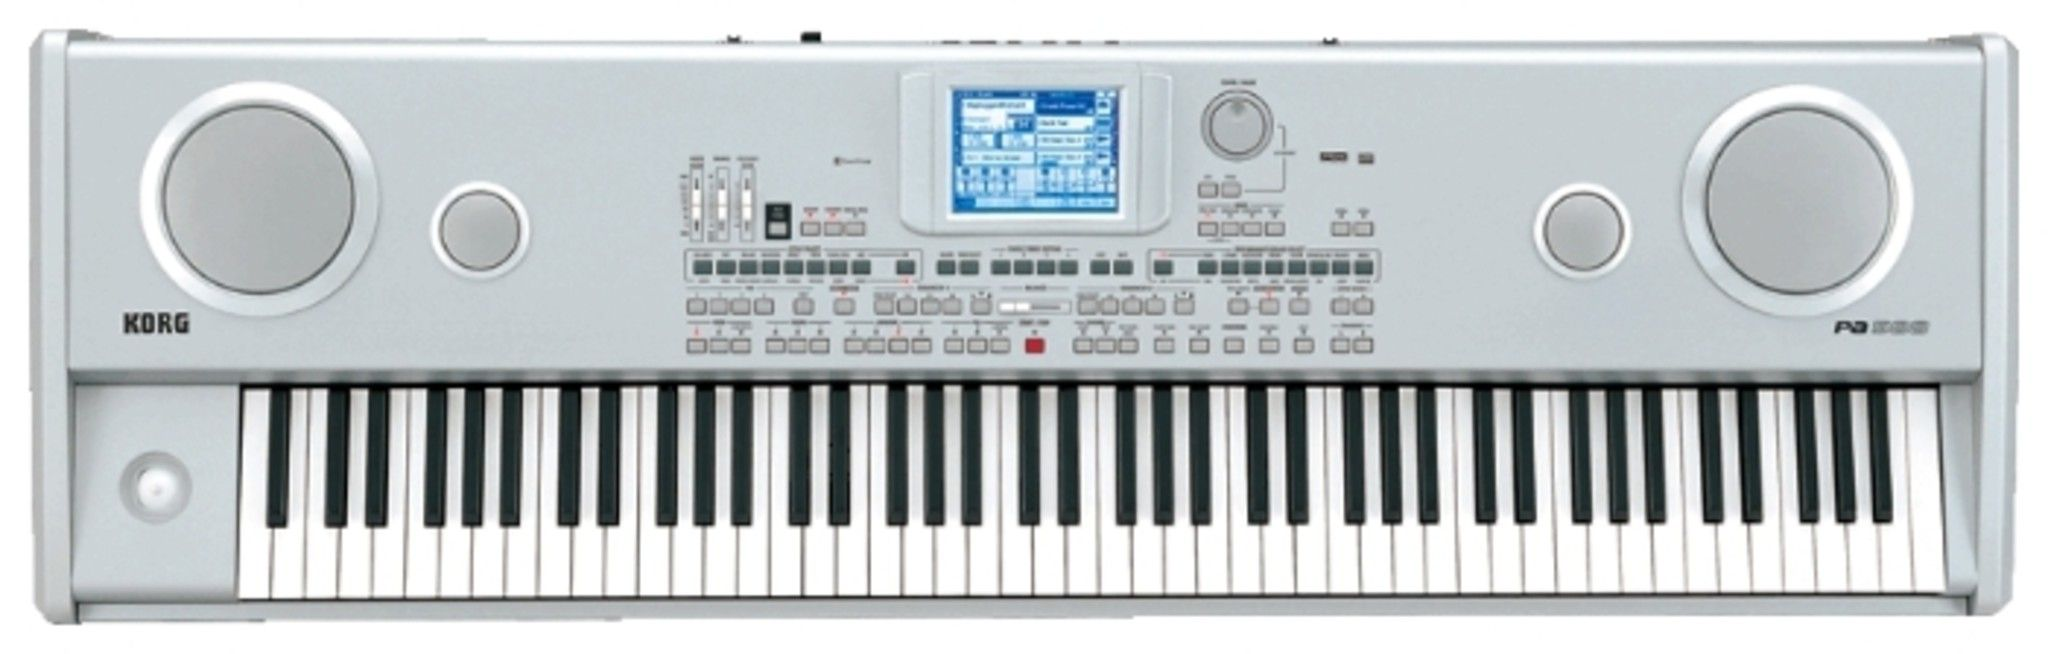 KORG PA 588 Pianoforte Digitale 88 tasti Arranger Usb